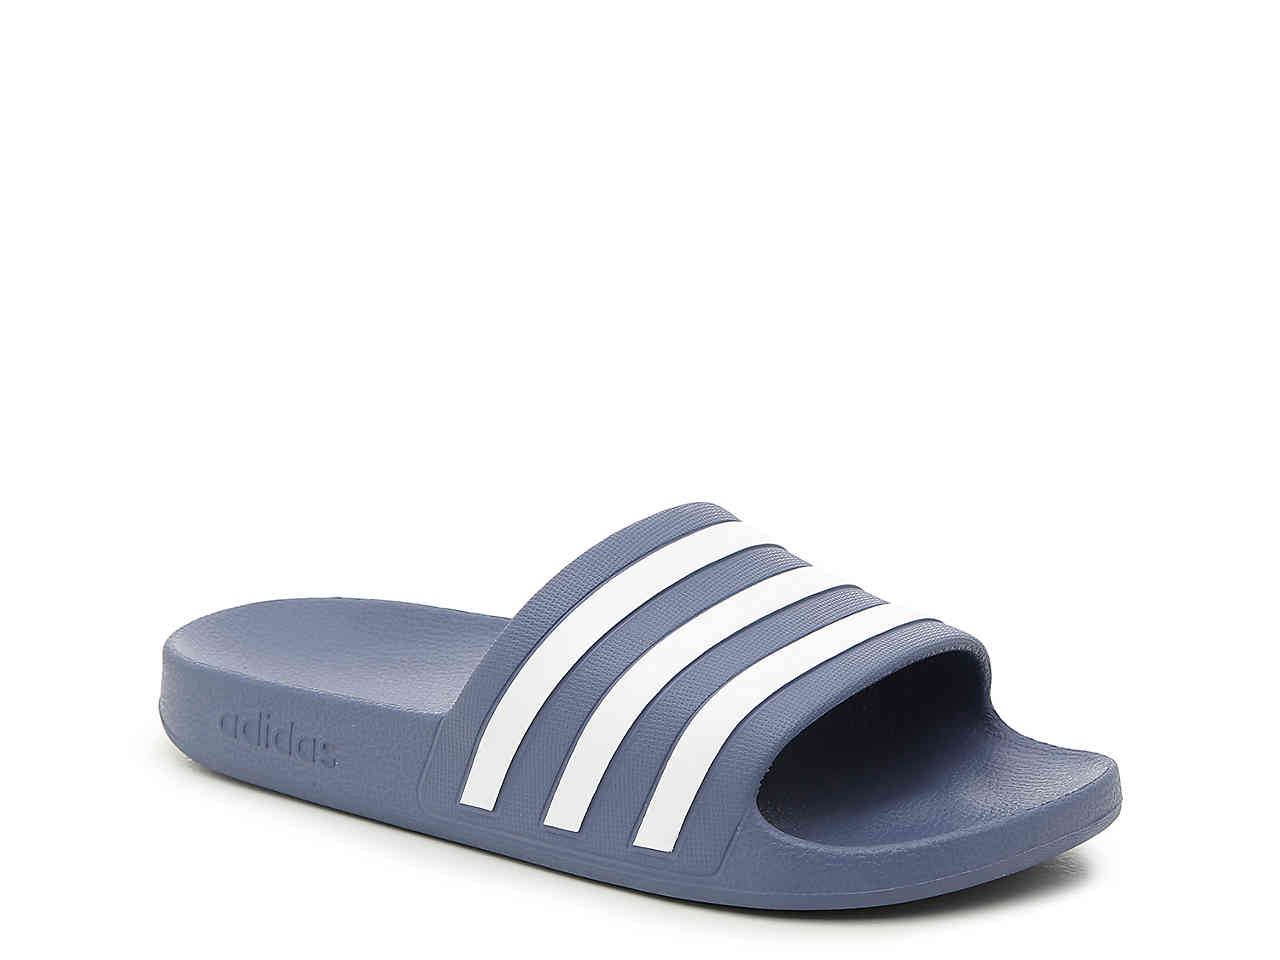 adidas slides for women